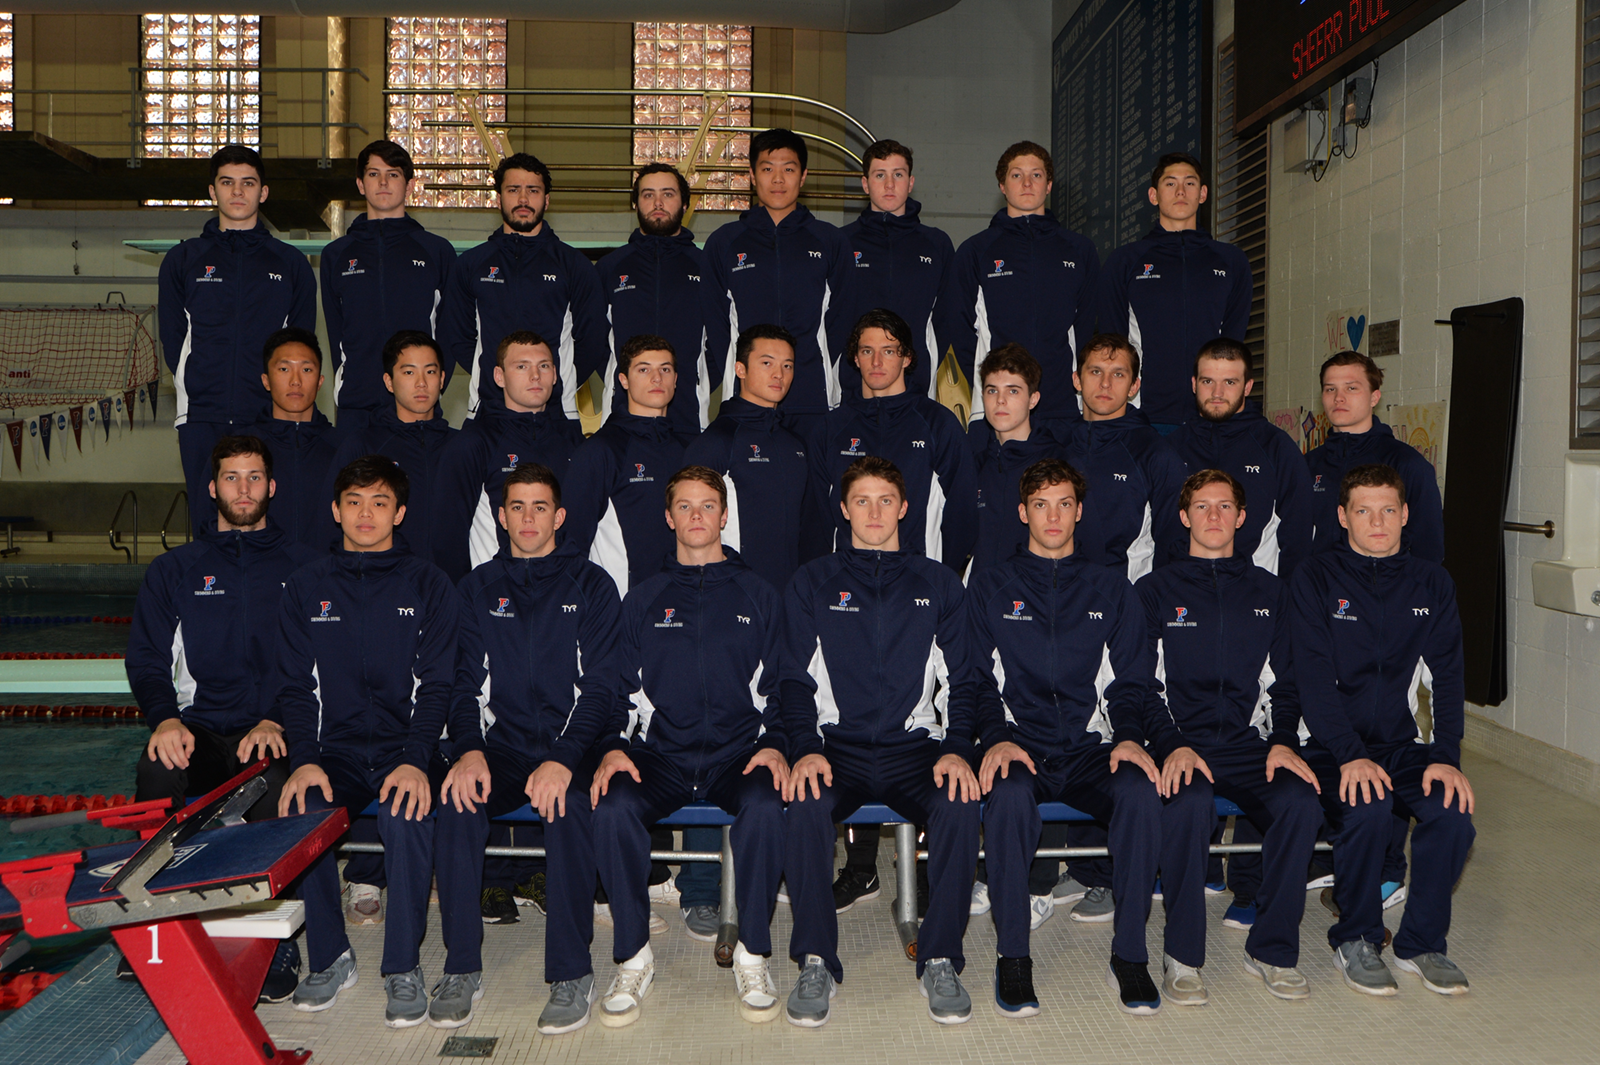 776bb39d4f 2018-19 Men's Swimming and Diving Roster - University of ...